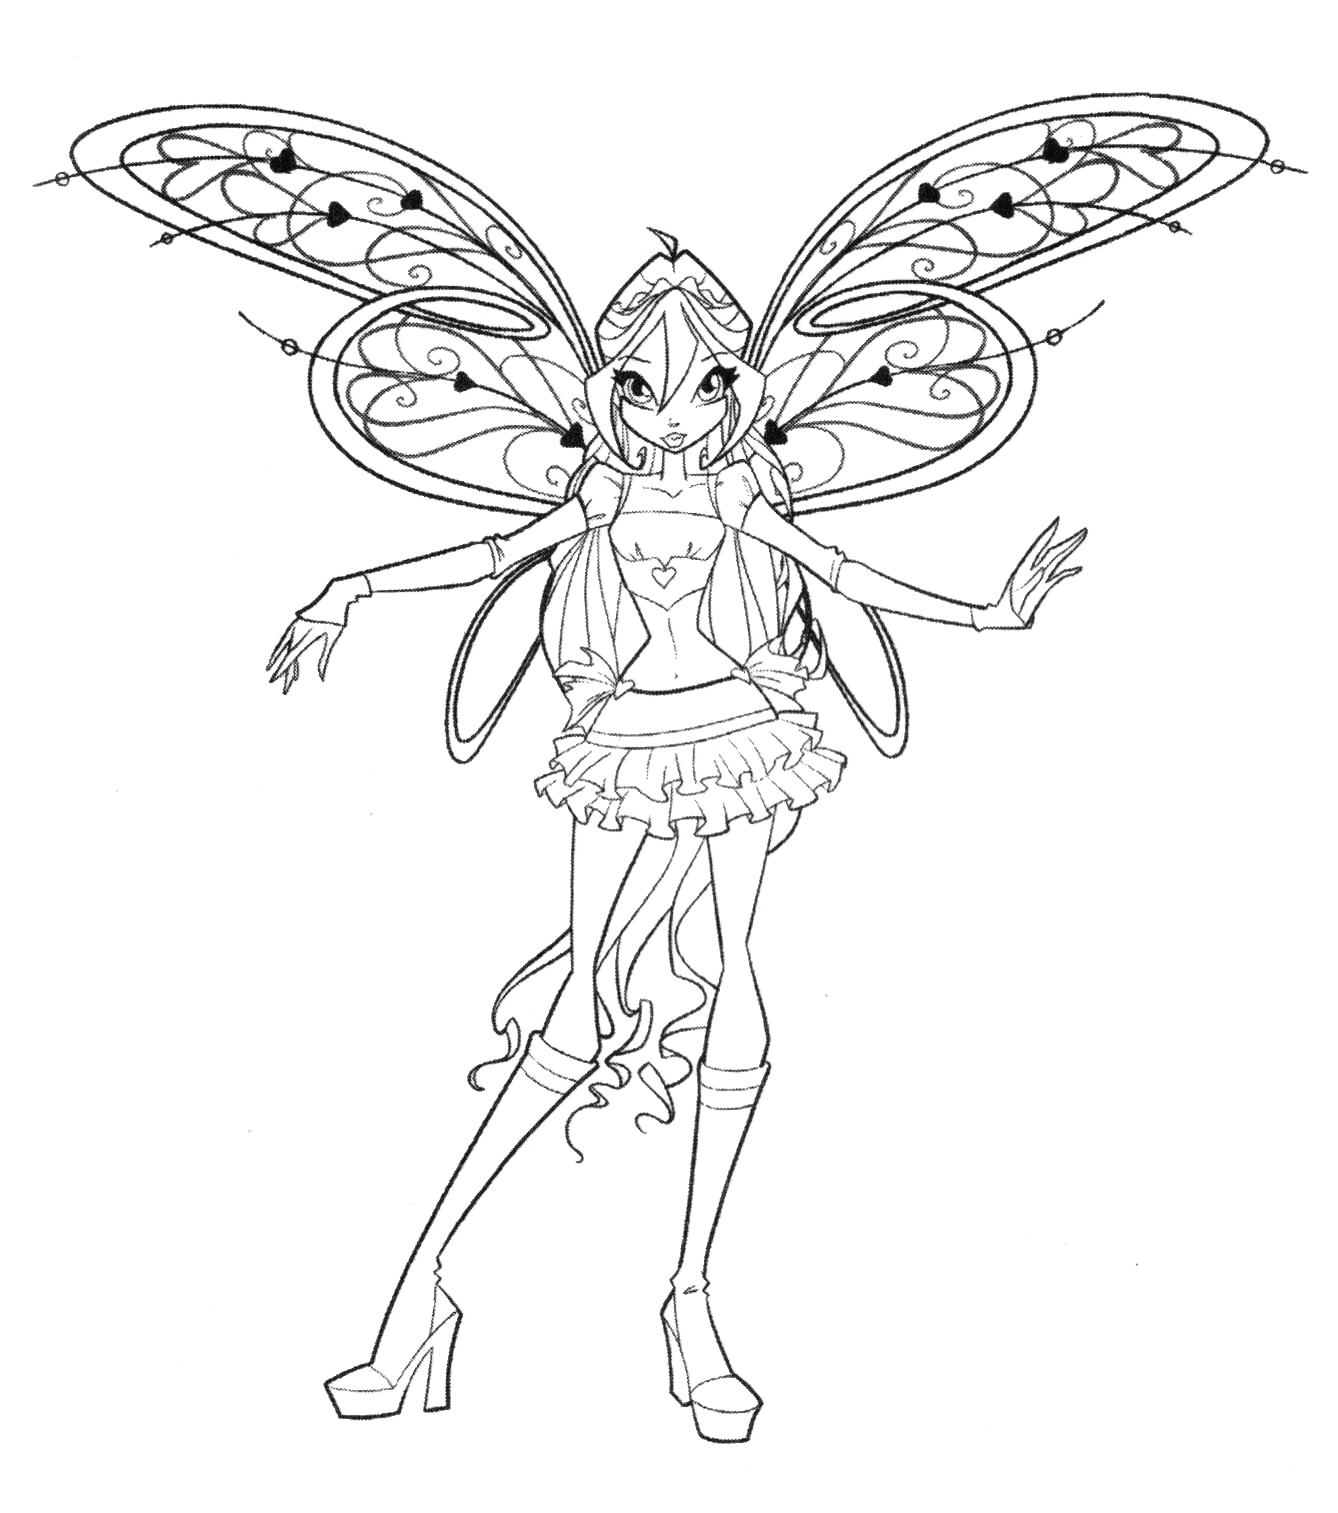 winx believix coloring pages | Winx Club All: Colorear: Winx Club Believix